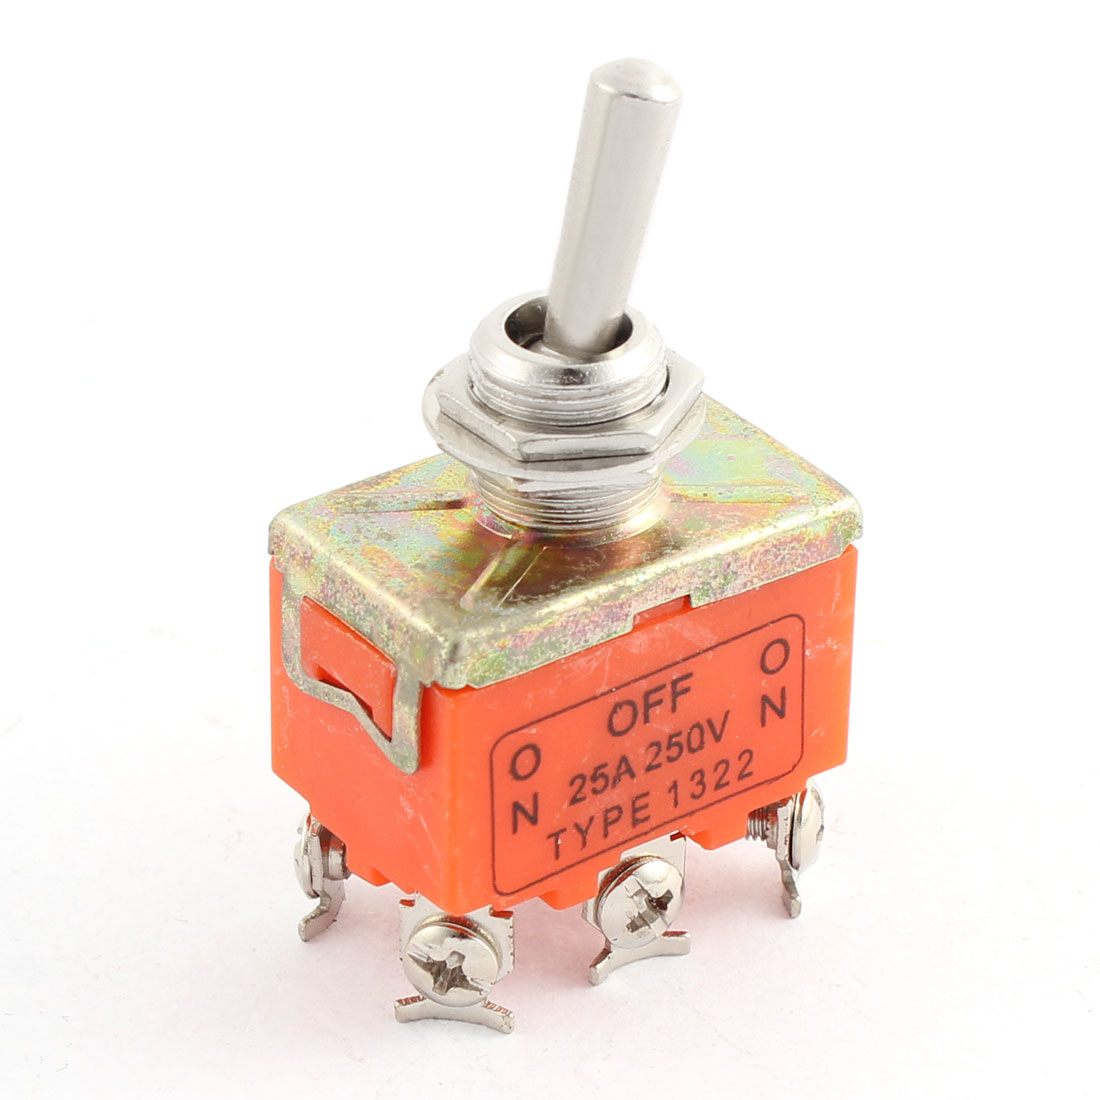 AC 250V 25A DPDT ON-OFF-ON 3 Positions 6 Screw Terminals Panel Mount Self Locking Power Rocker Toggle Switch Orange